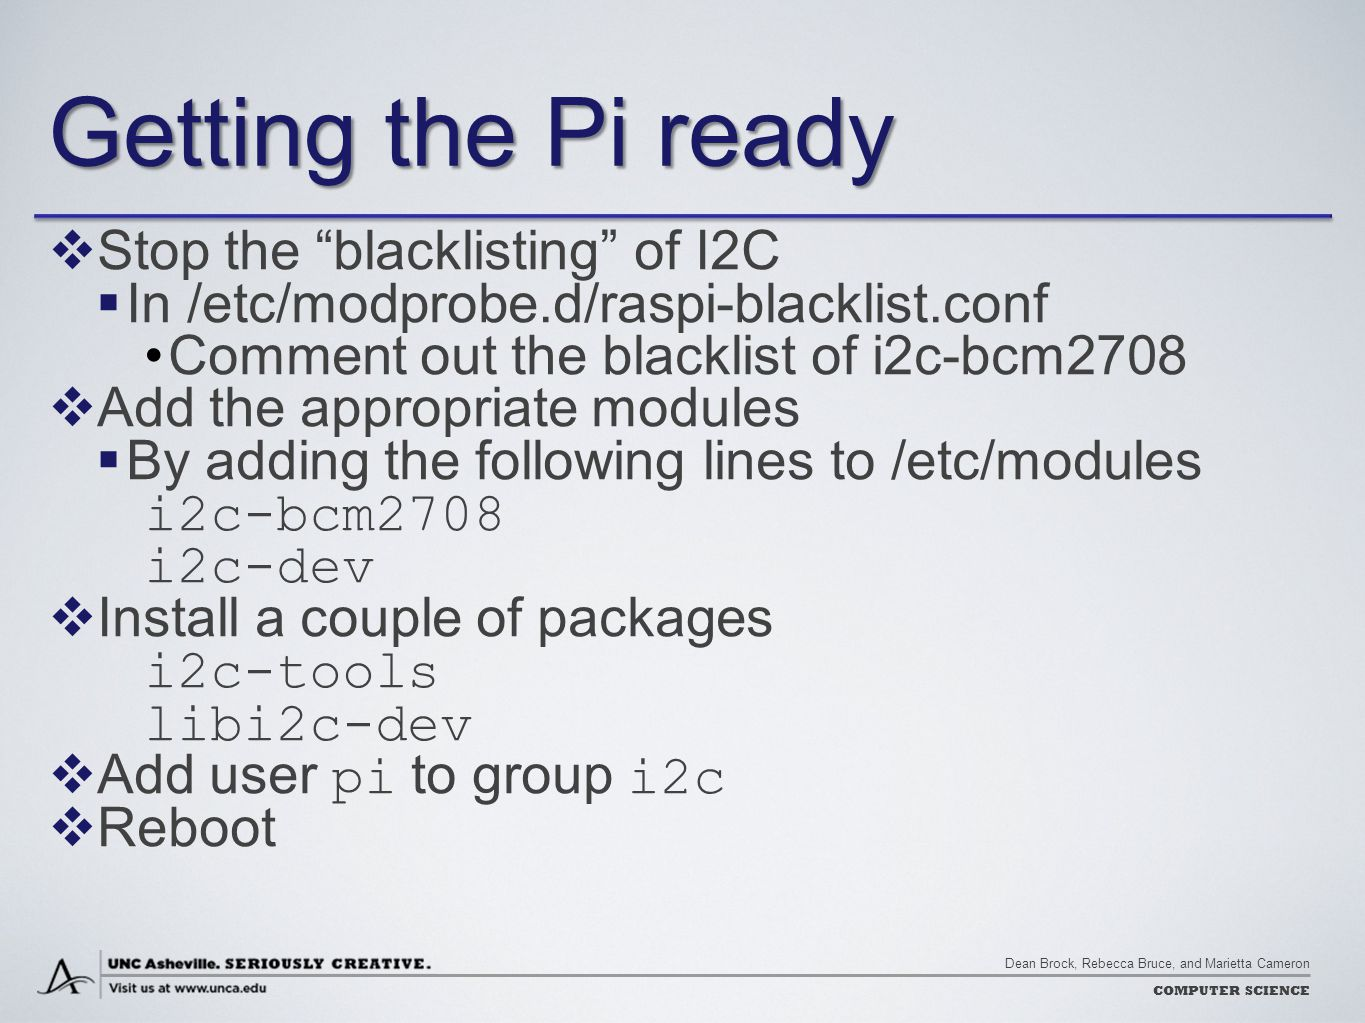 """Dean Brock, Rebecca Bruce, and Marietta Cameron COMPUTER SCIENCE Getting the Pi ready  Stop the """"blacklisting"""" of I2C  In /etc/modprobe.d/raspi-blac"""